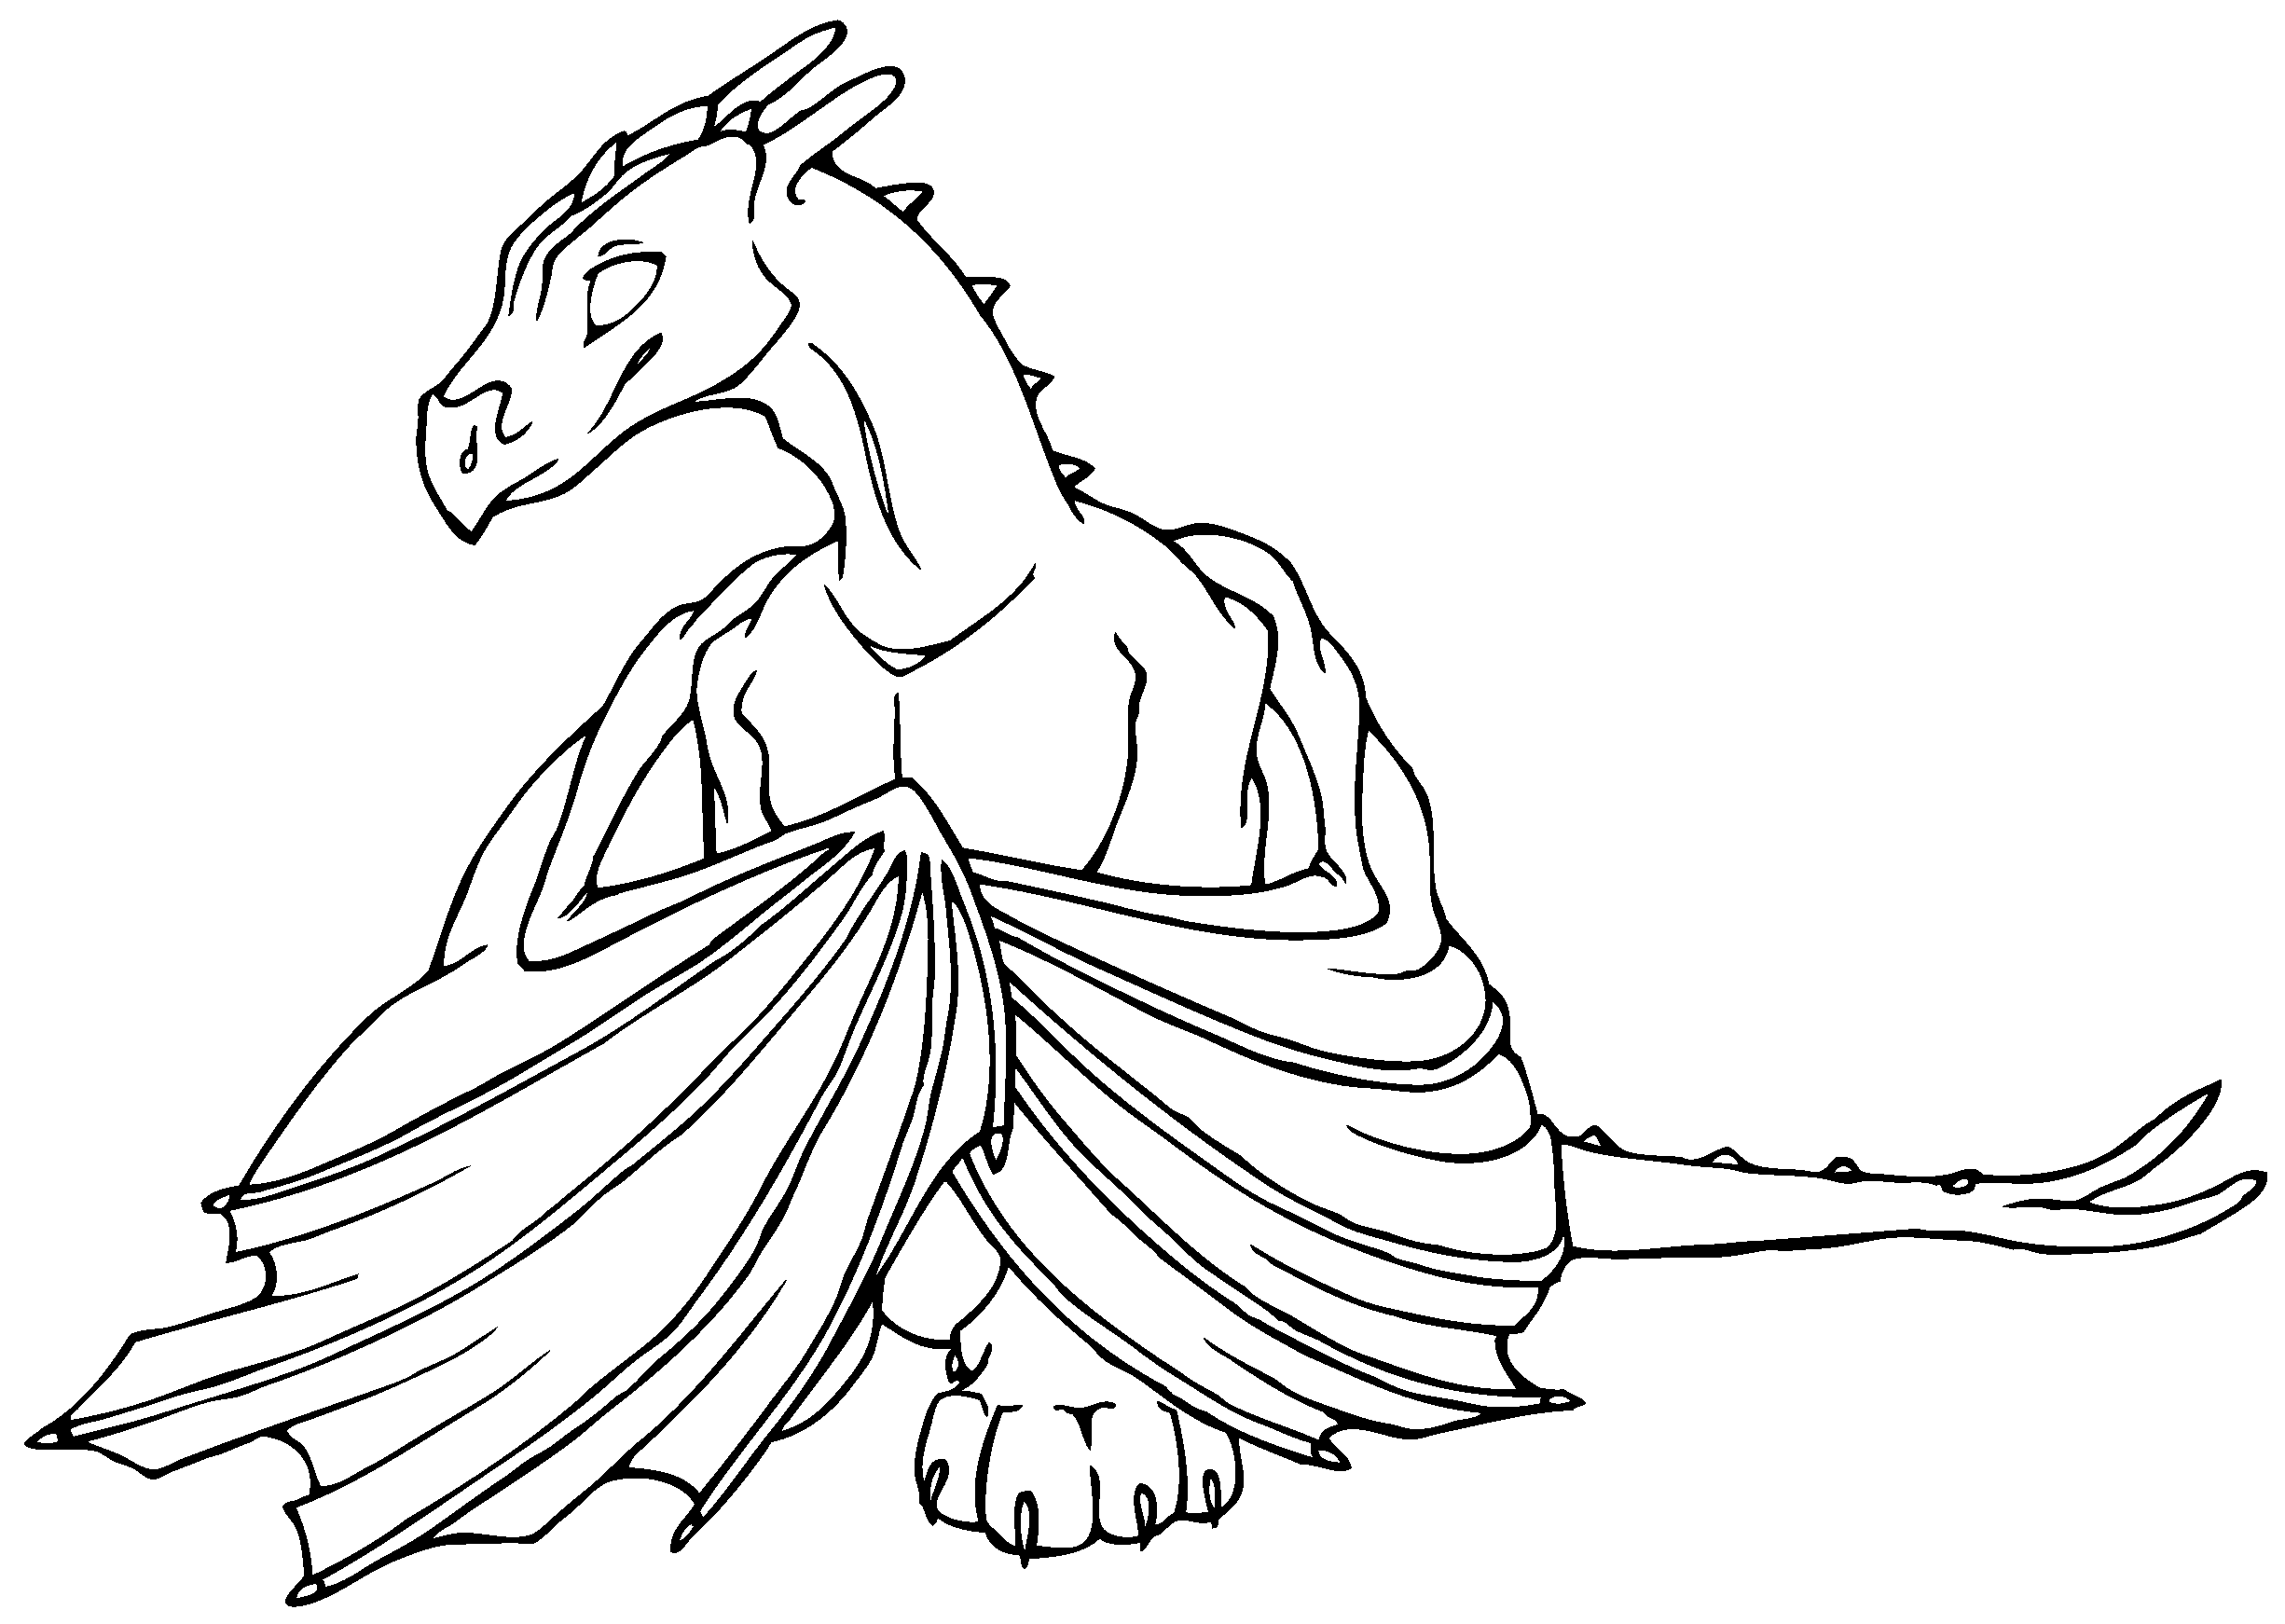 Printable coloring pages of dragons - Here S Our Collection Of Dragon Coloring Pages For Toddlers Preschool And Kindergarten These Are Suitable For A Dragon Theme Fantasy Fairy Tales Theme O